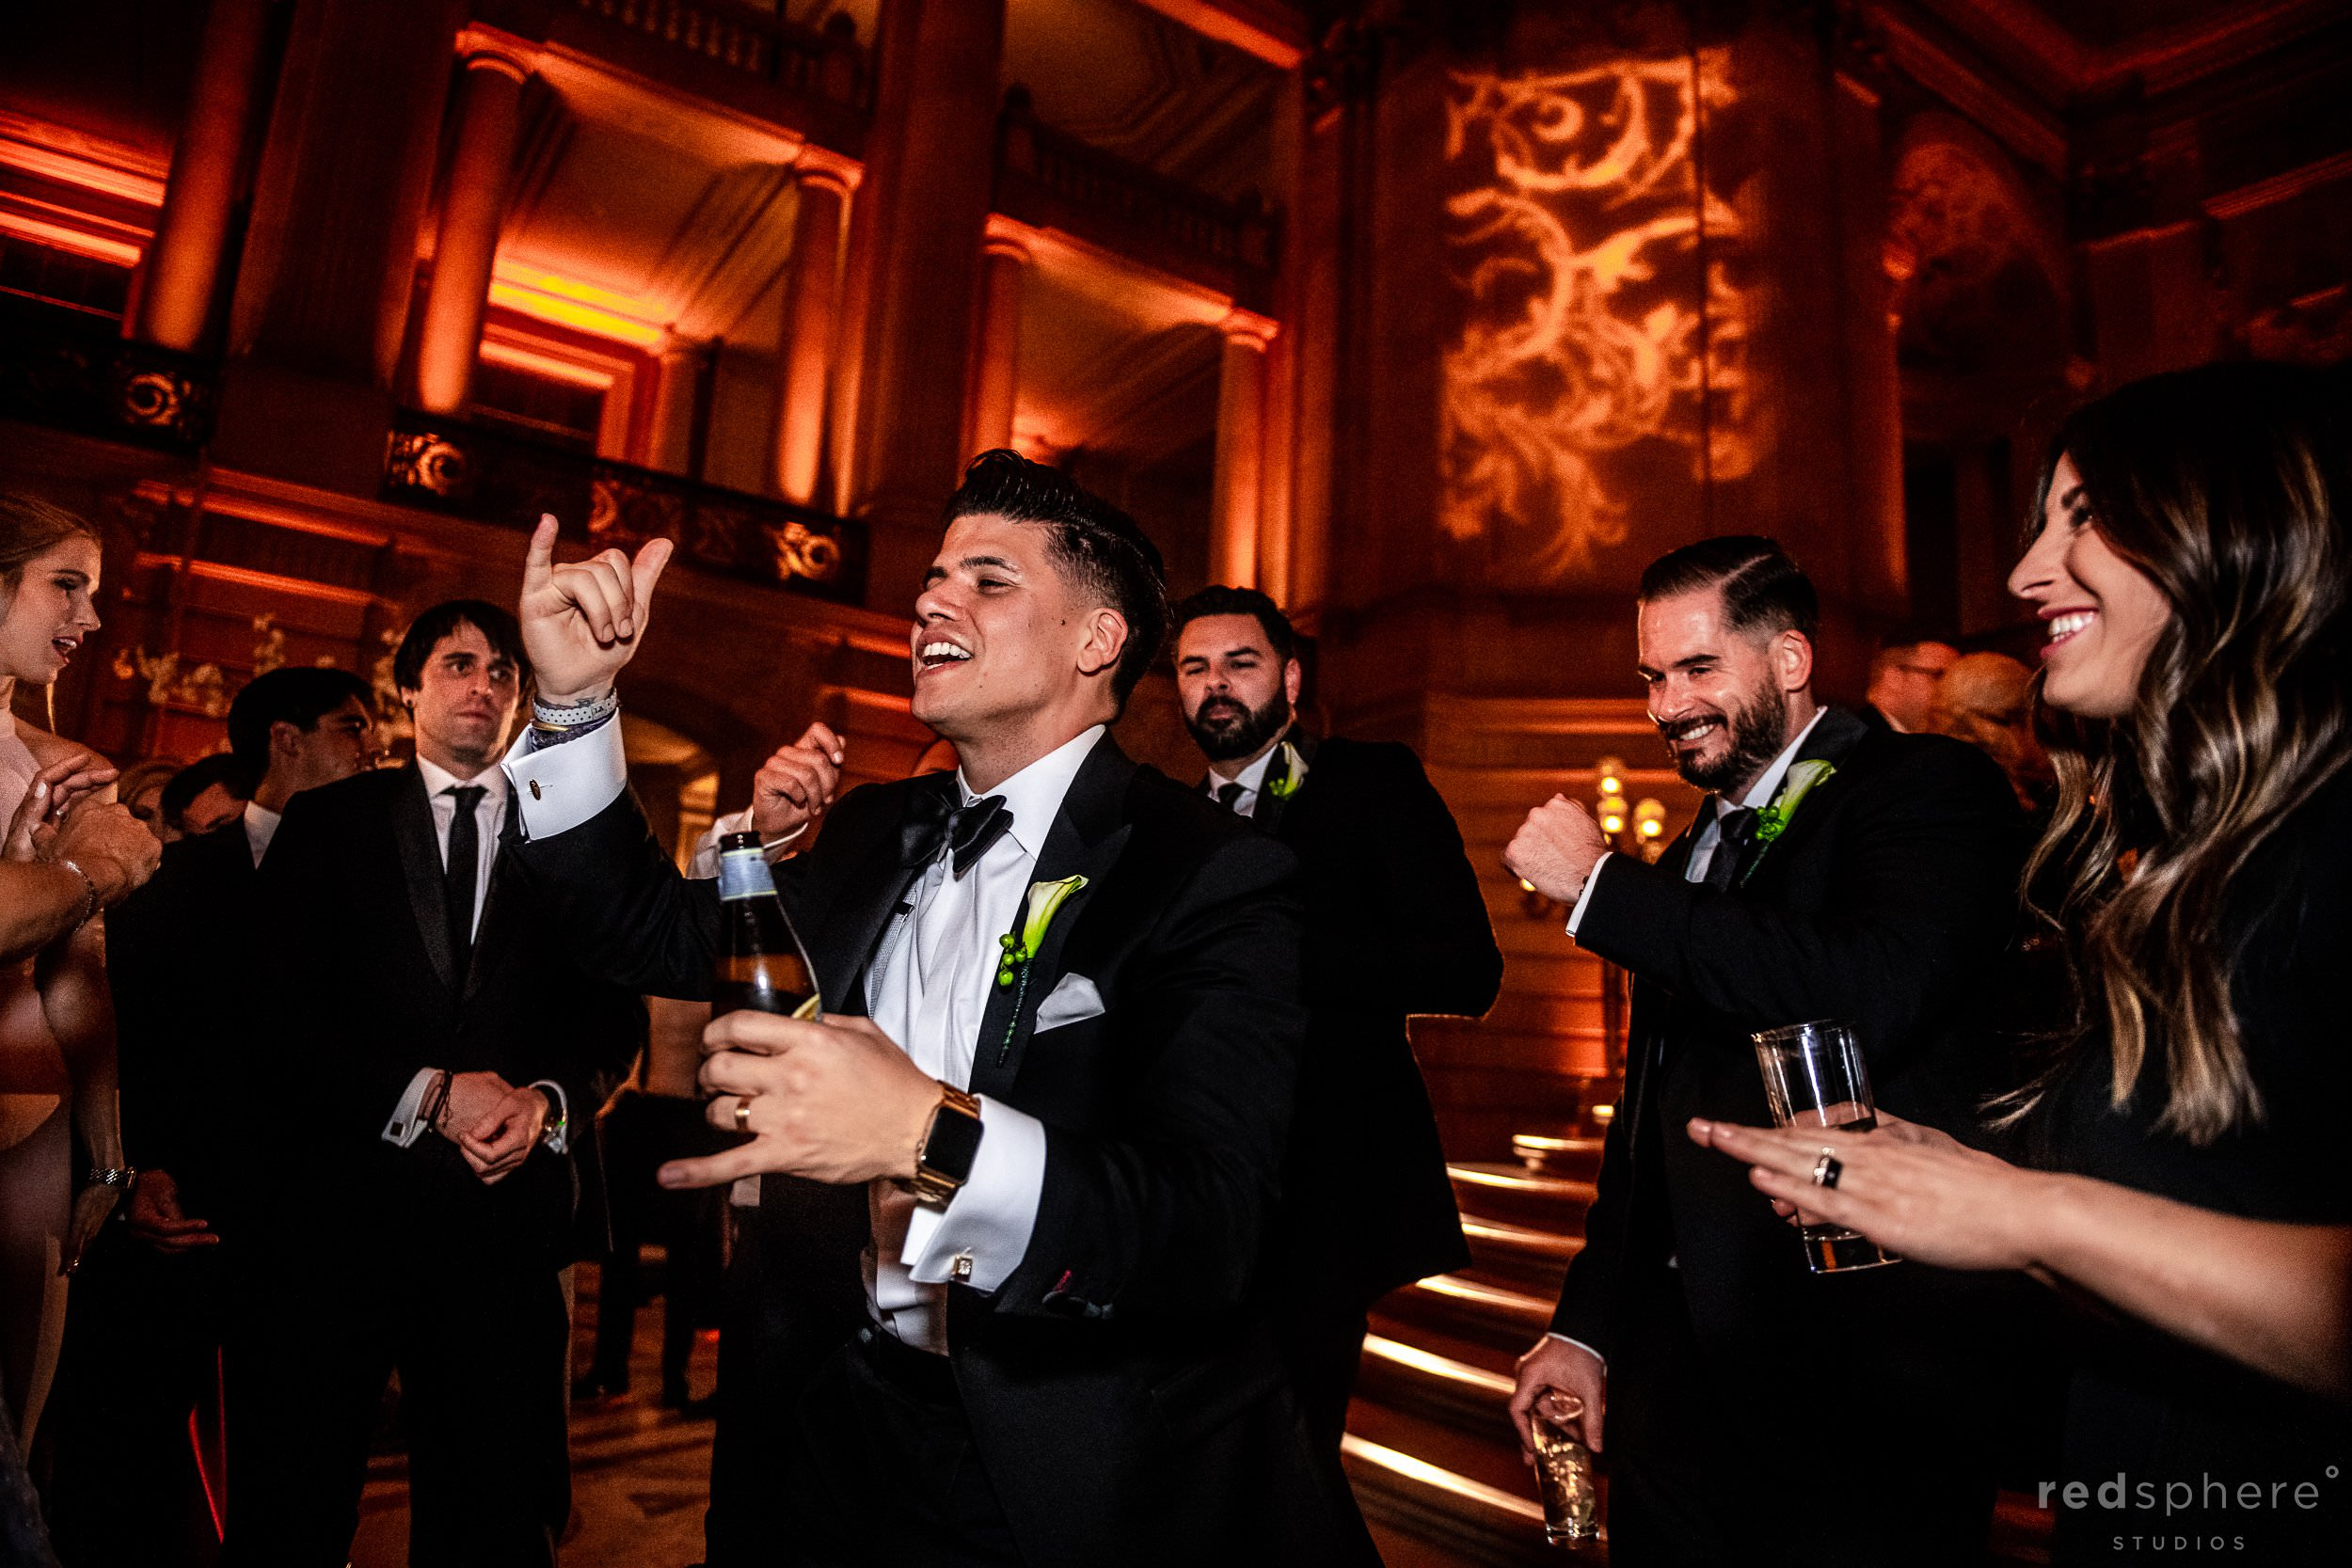 Groom dancing with guests at San Francisco City Hall dance floor